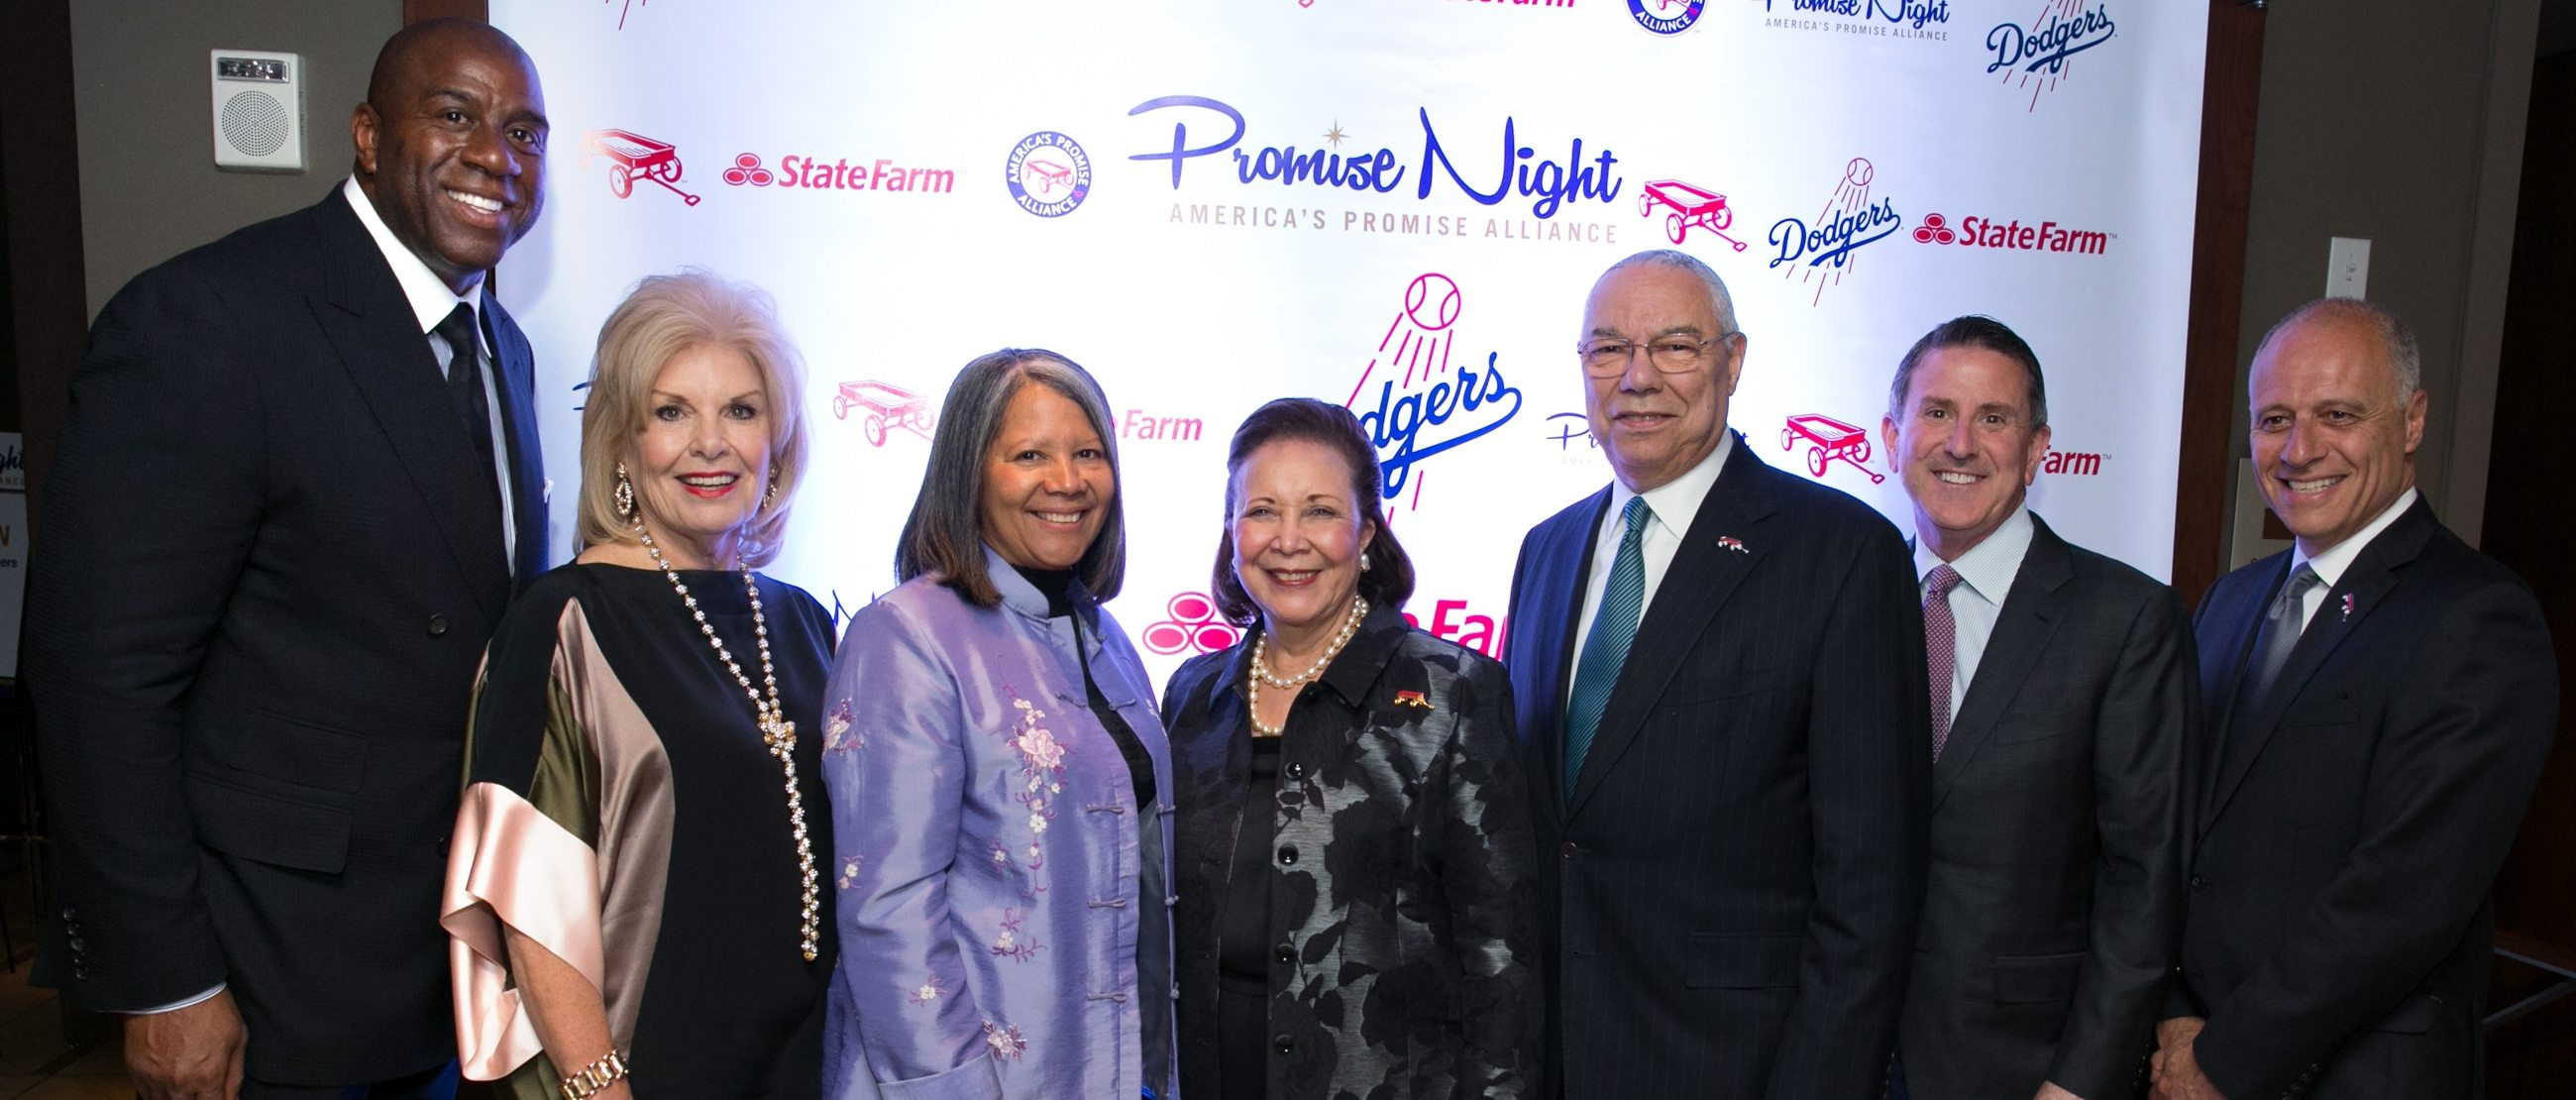 2016 Promise Night Honorees, America's Promise